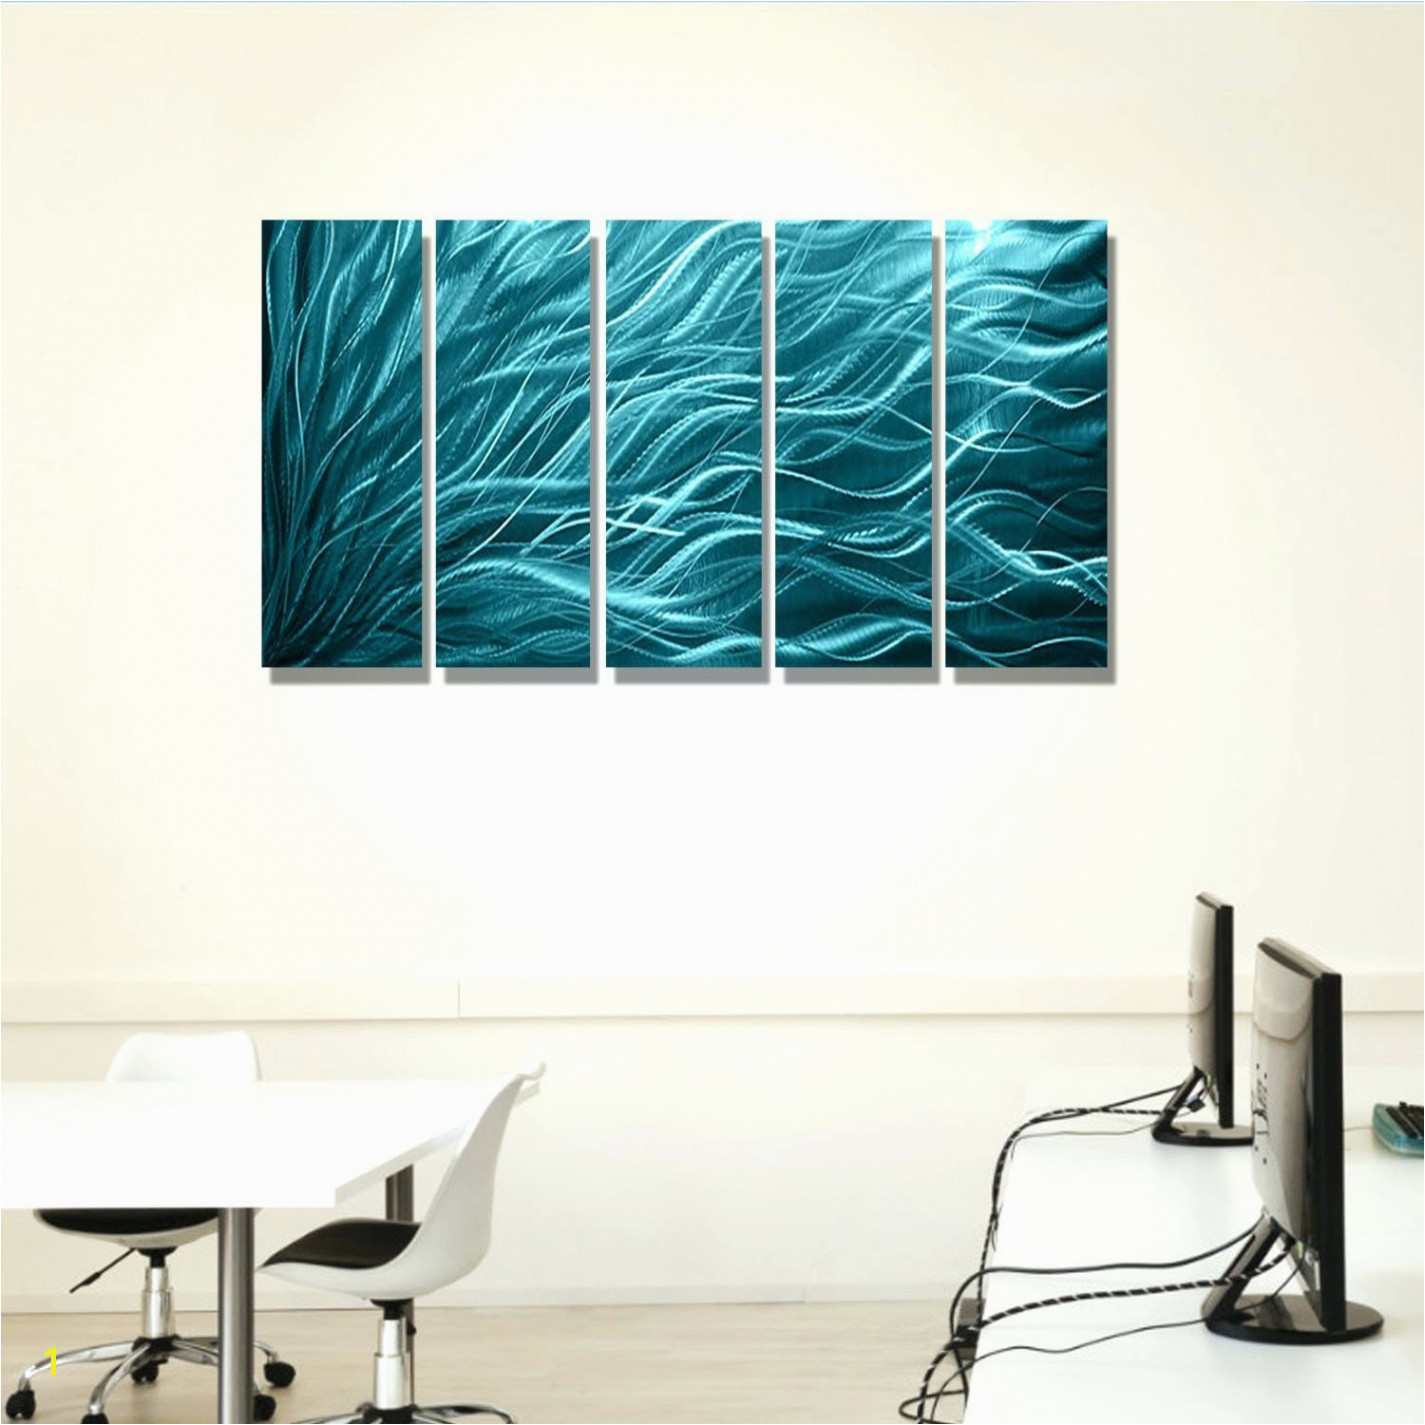 Image de Metal Wall Art Panels Fresh 1 Kirkland Wall Decor Home Design 0d –